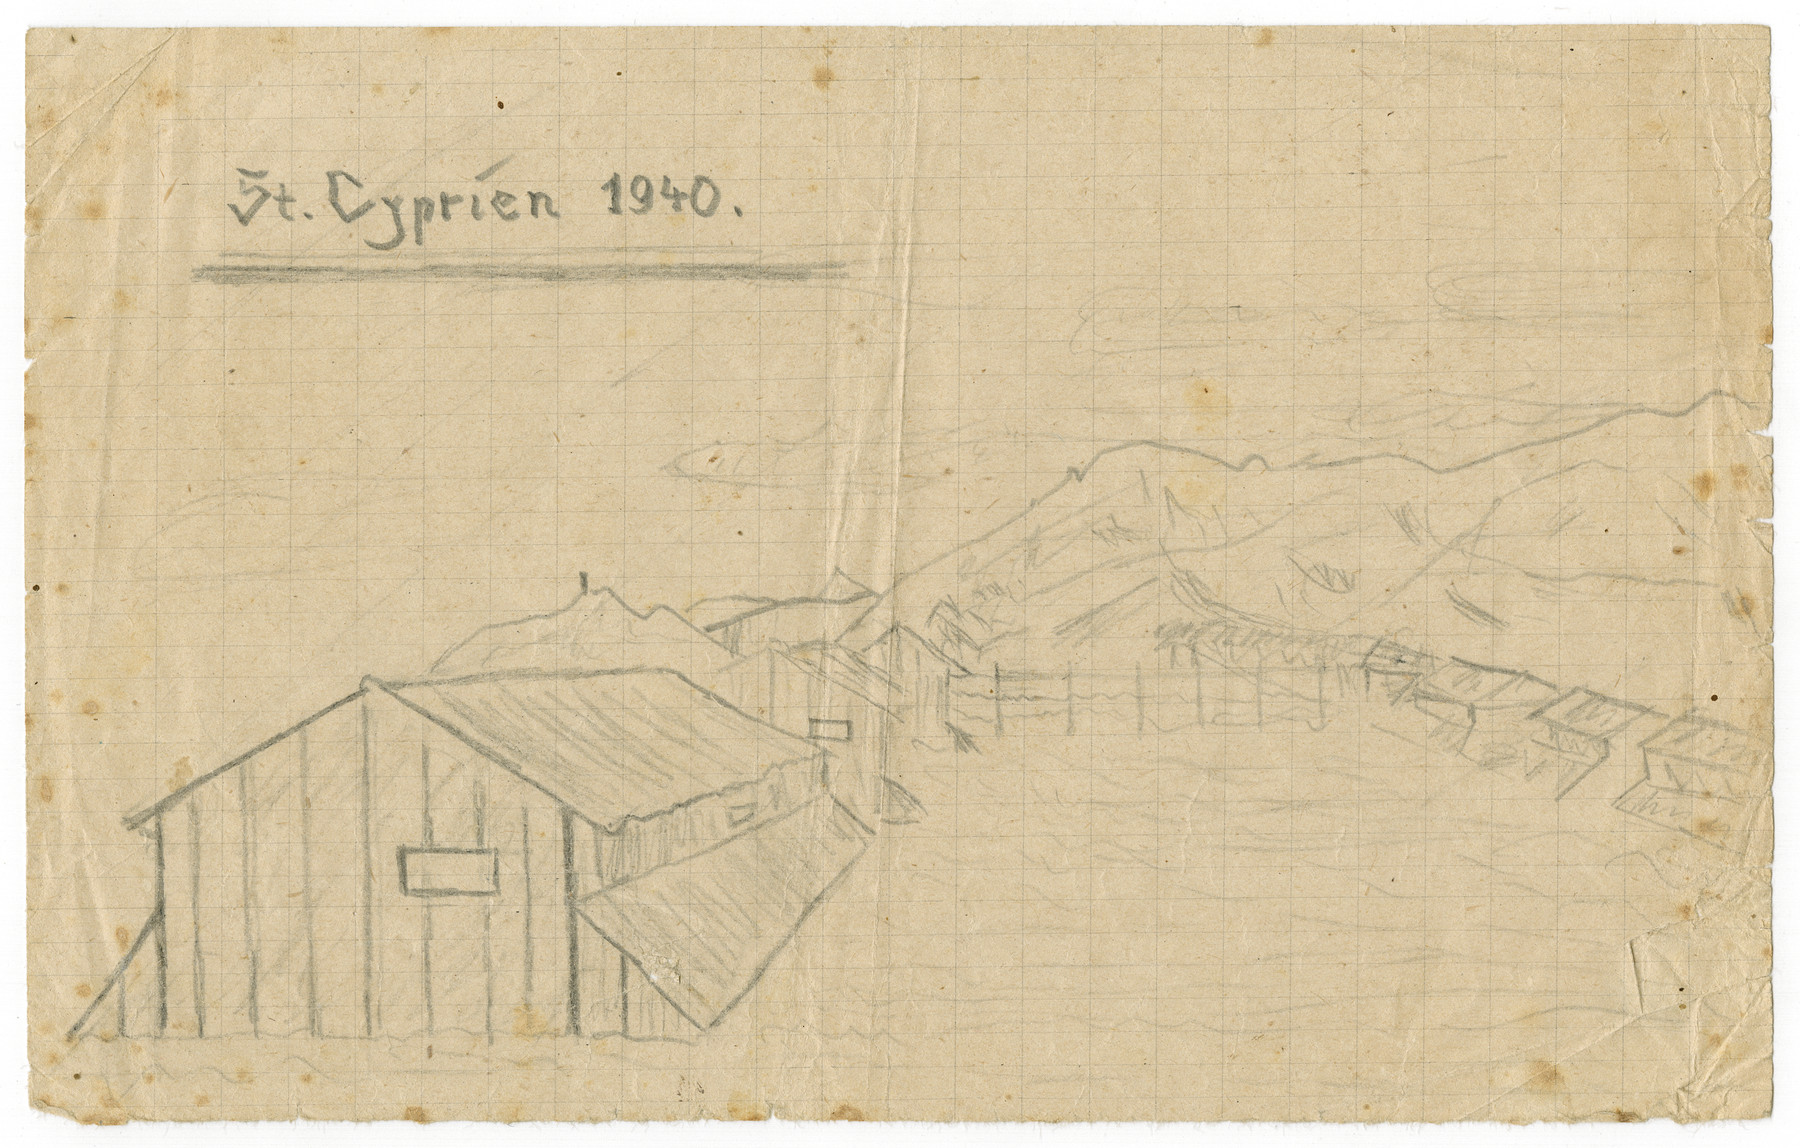 Sketch of a barrack in the Saint Cyprien internment camp drawn by Kurt Feigenbaum after he was deported from Belgium.